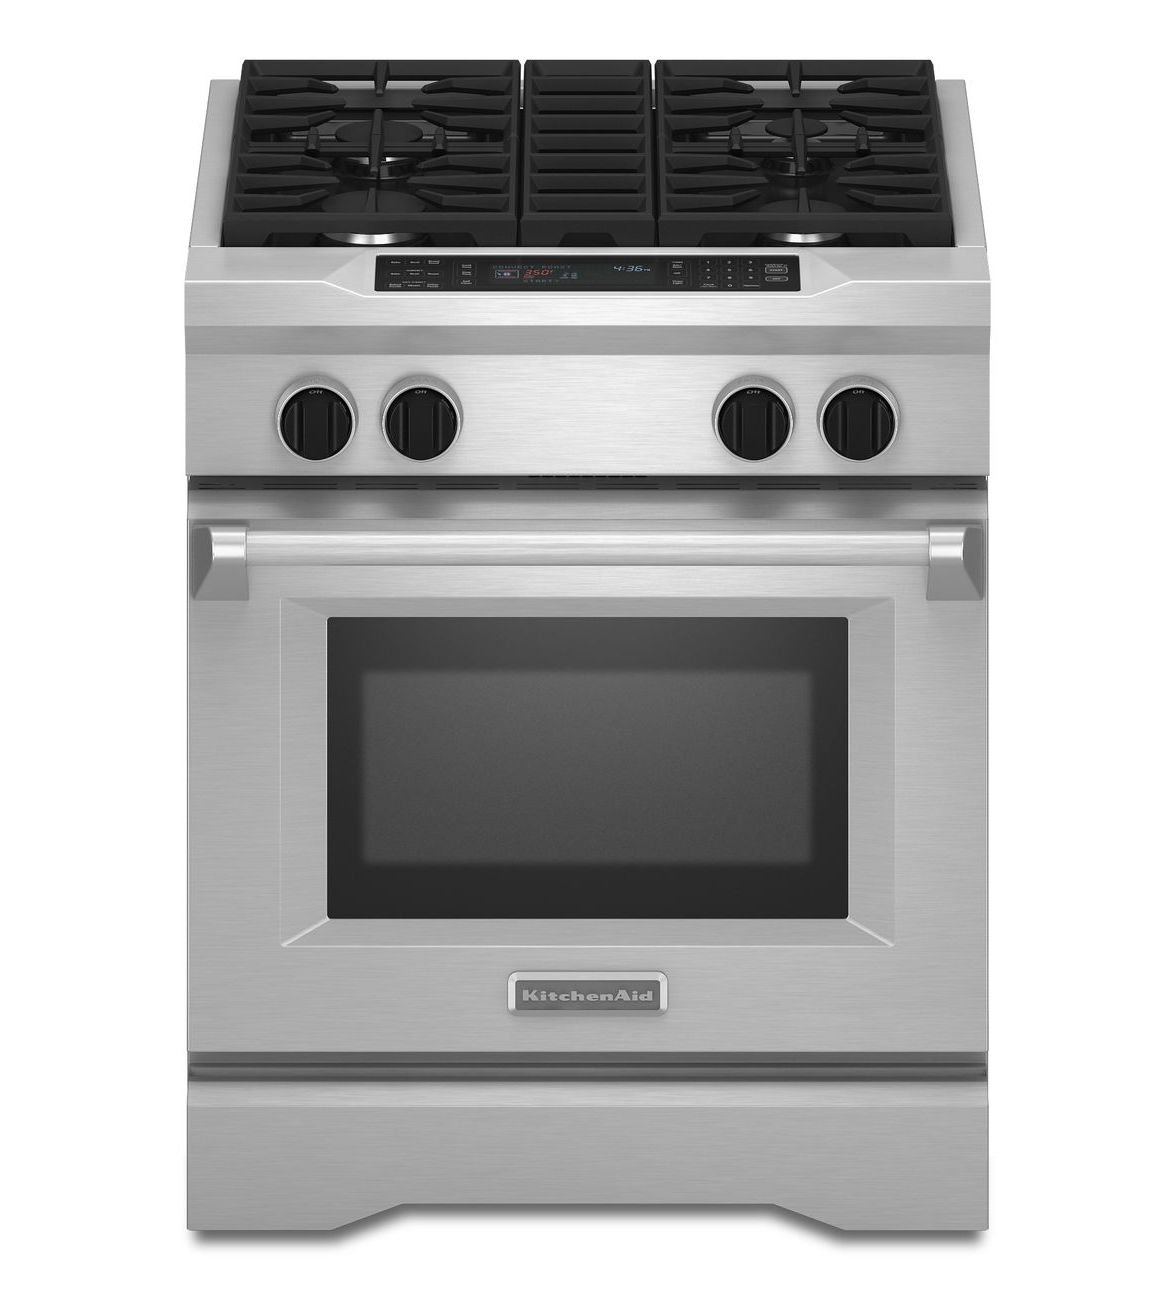 Wonderful Amazon.com: Kitchenaid KDRS407VSS Commercial Style Dual Fuel Range:  Appliances